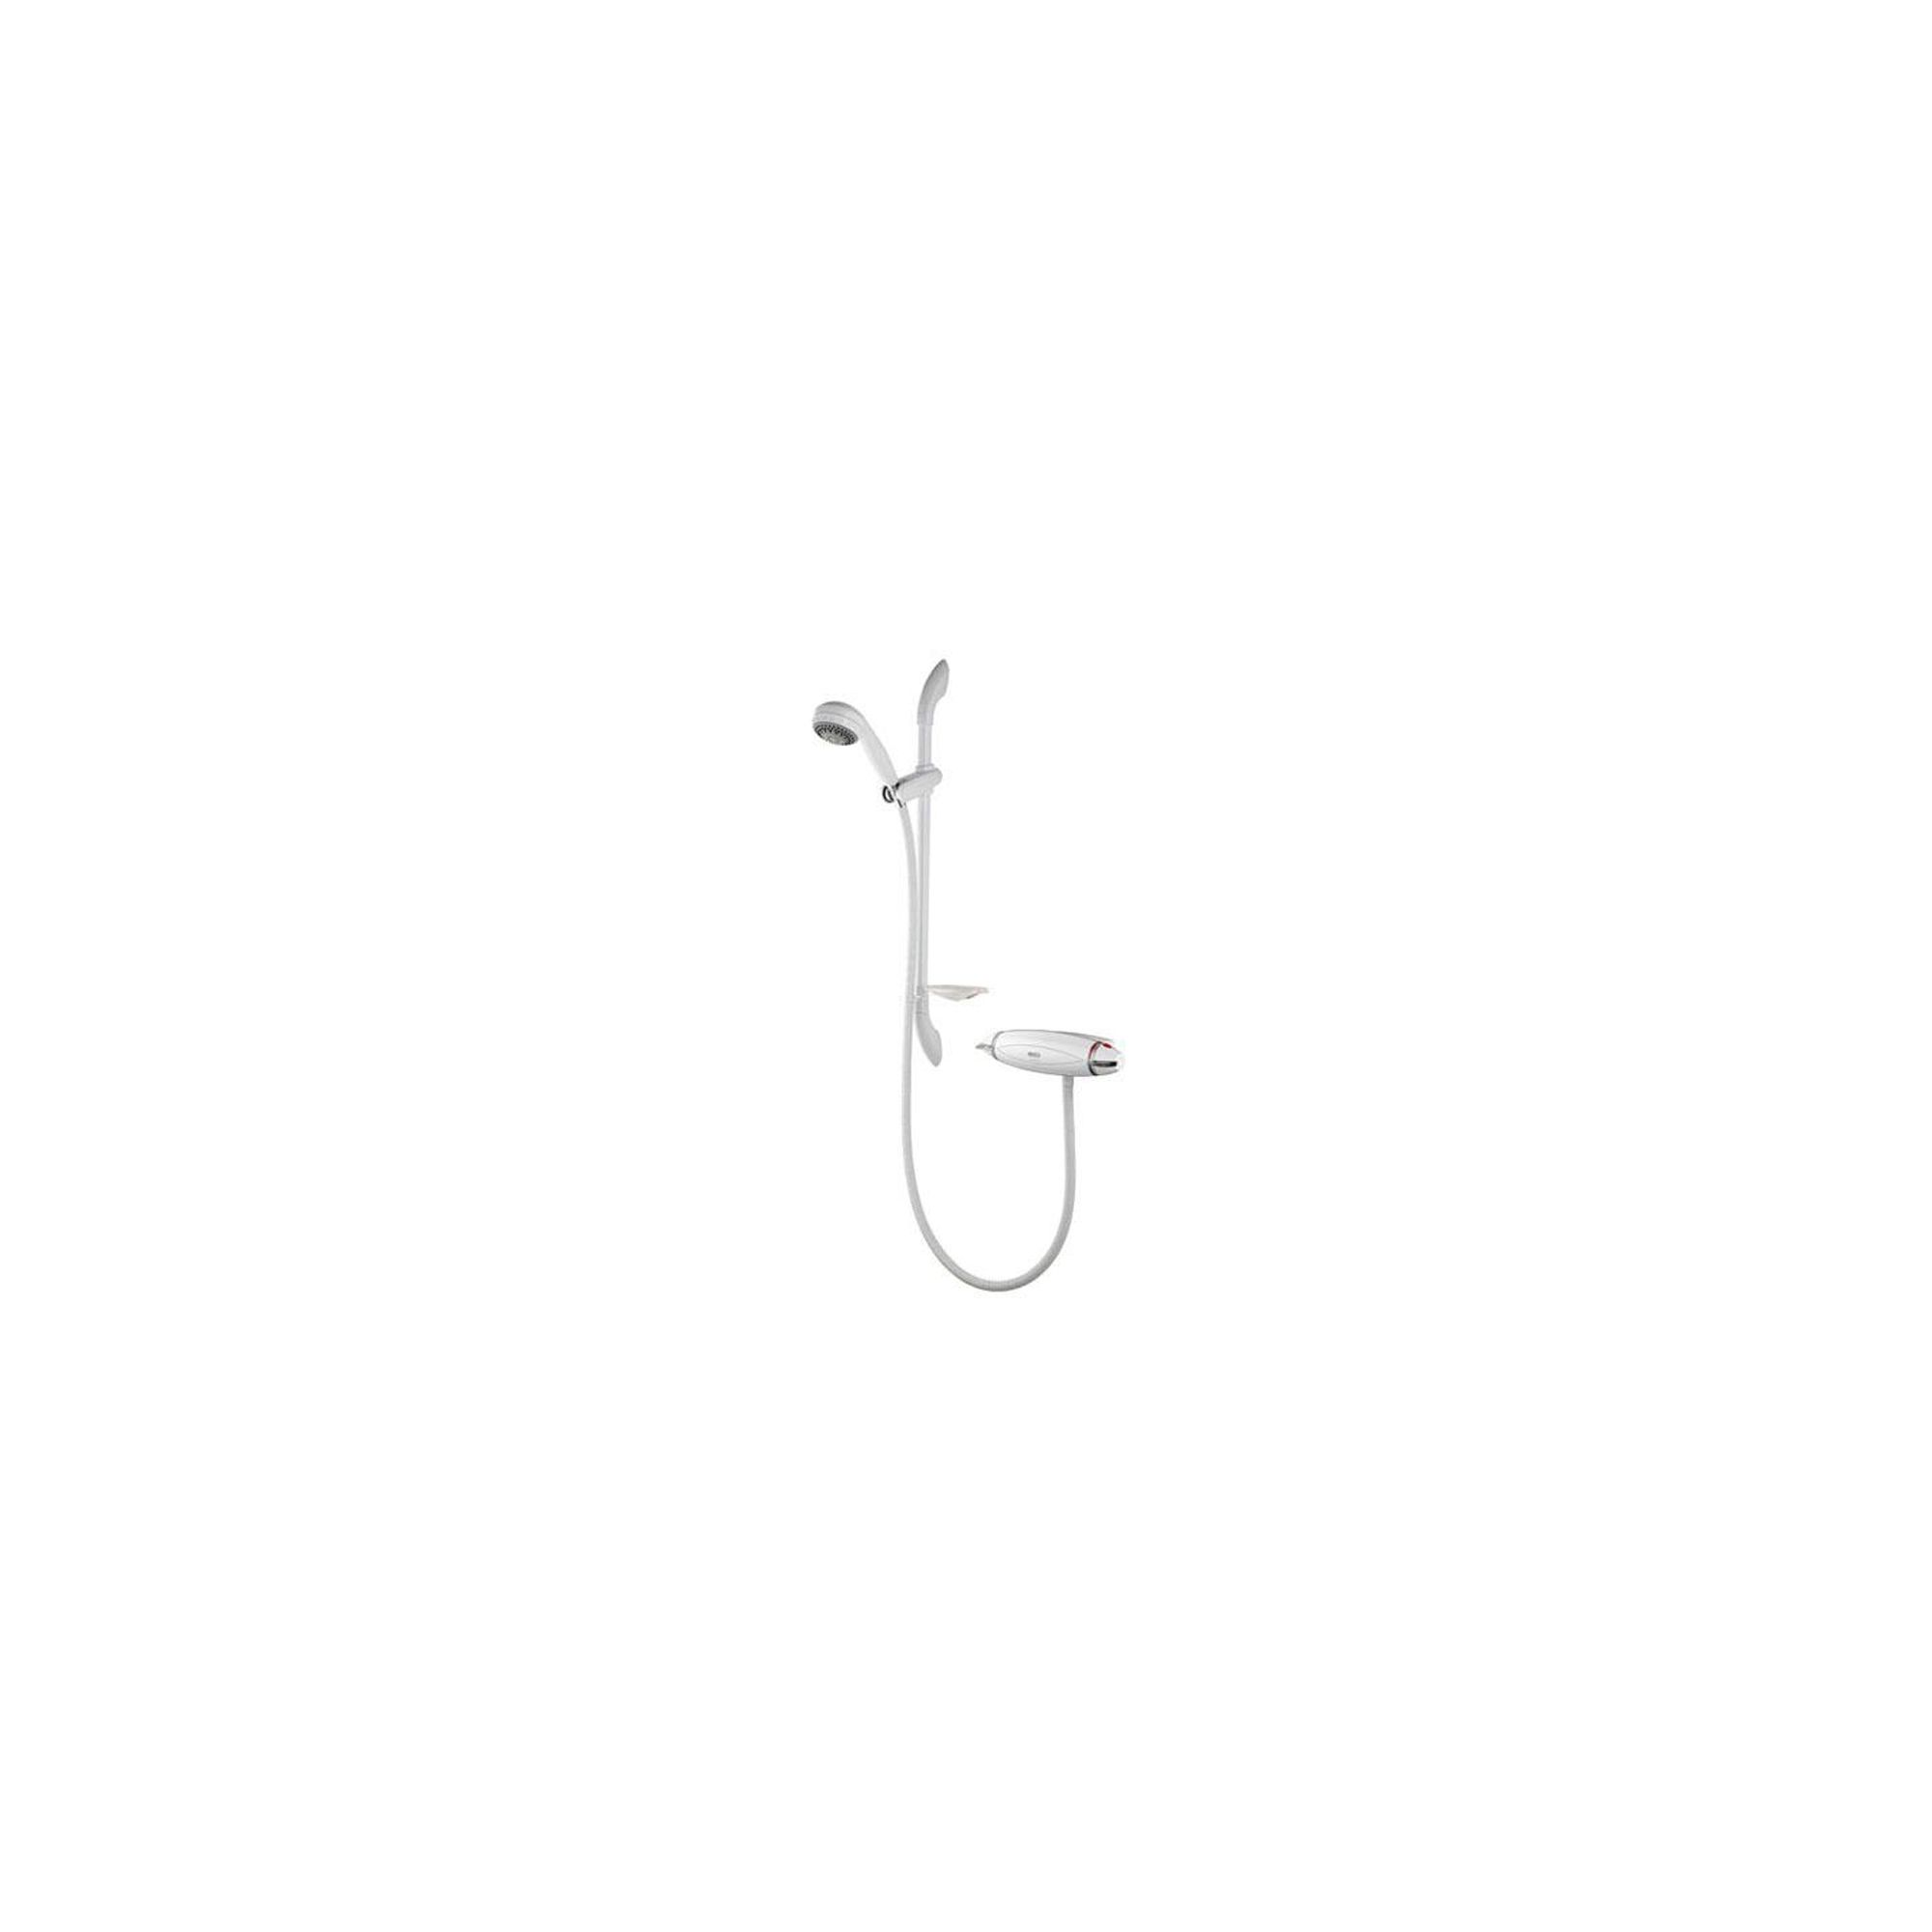 Aqualisa Aquarian Thermo Exposed Shower Valve with Adjustable Shower Head White at Tesco Direct